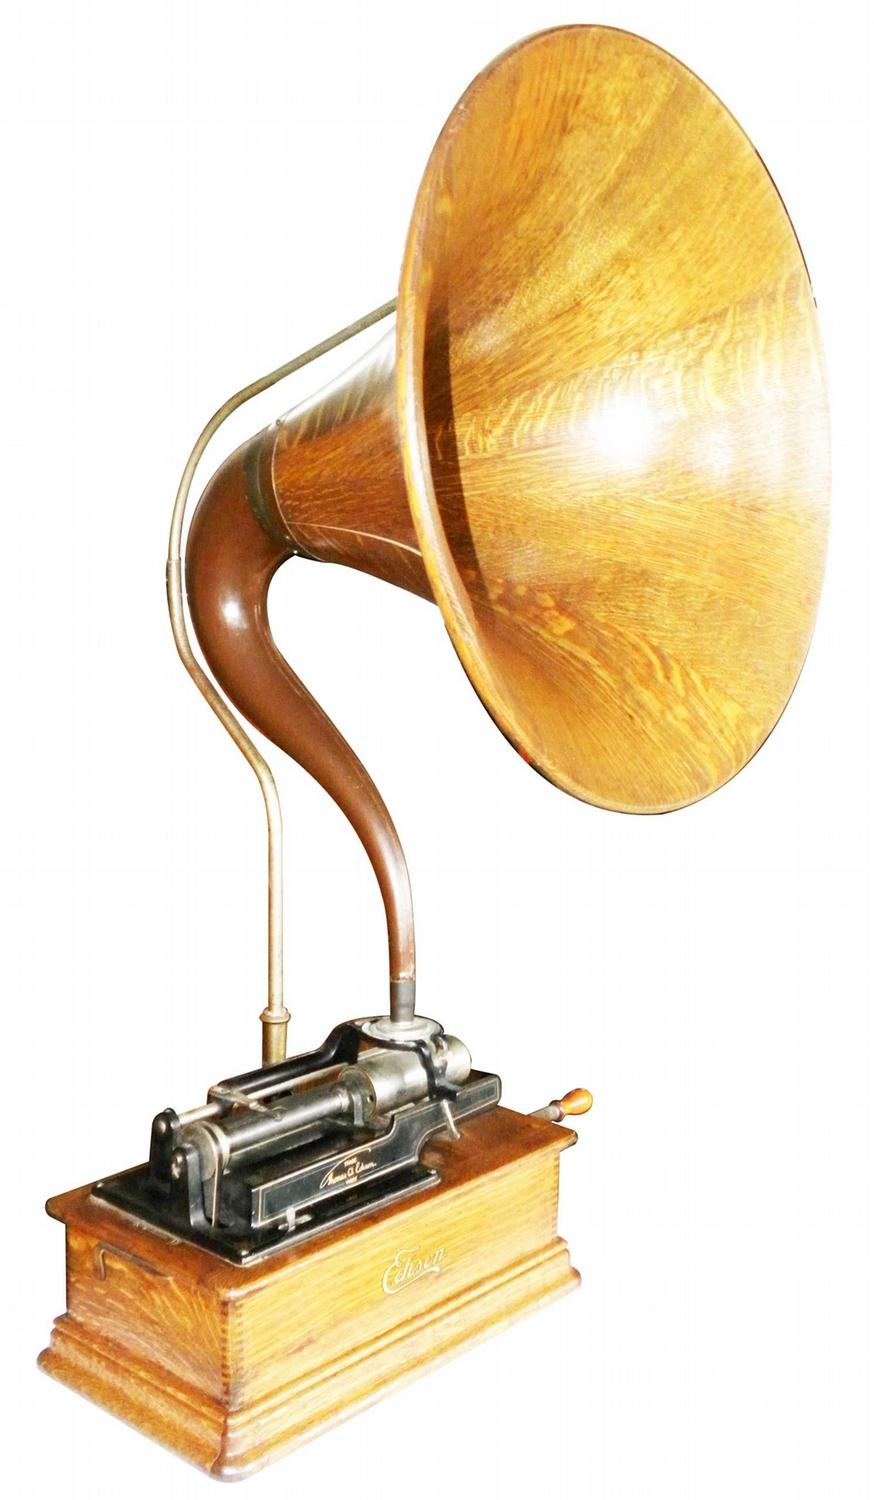 Edison Home Cylinder Phonograph Model E Loading Zoom